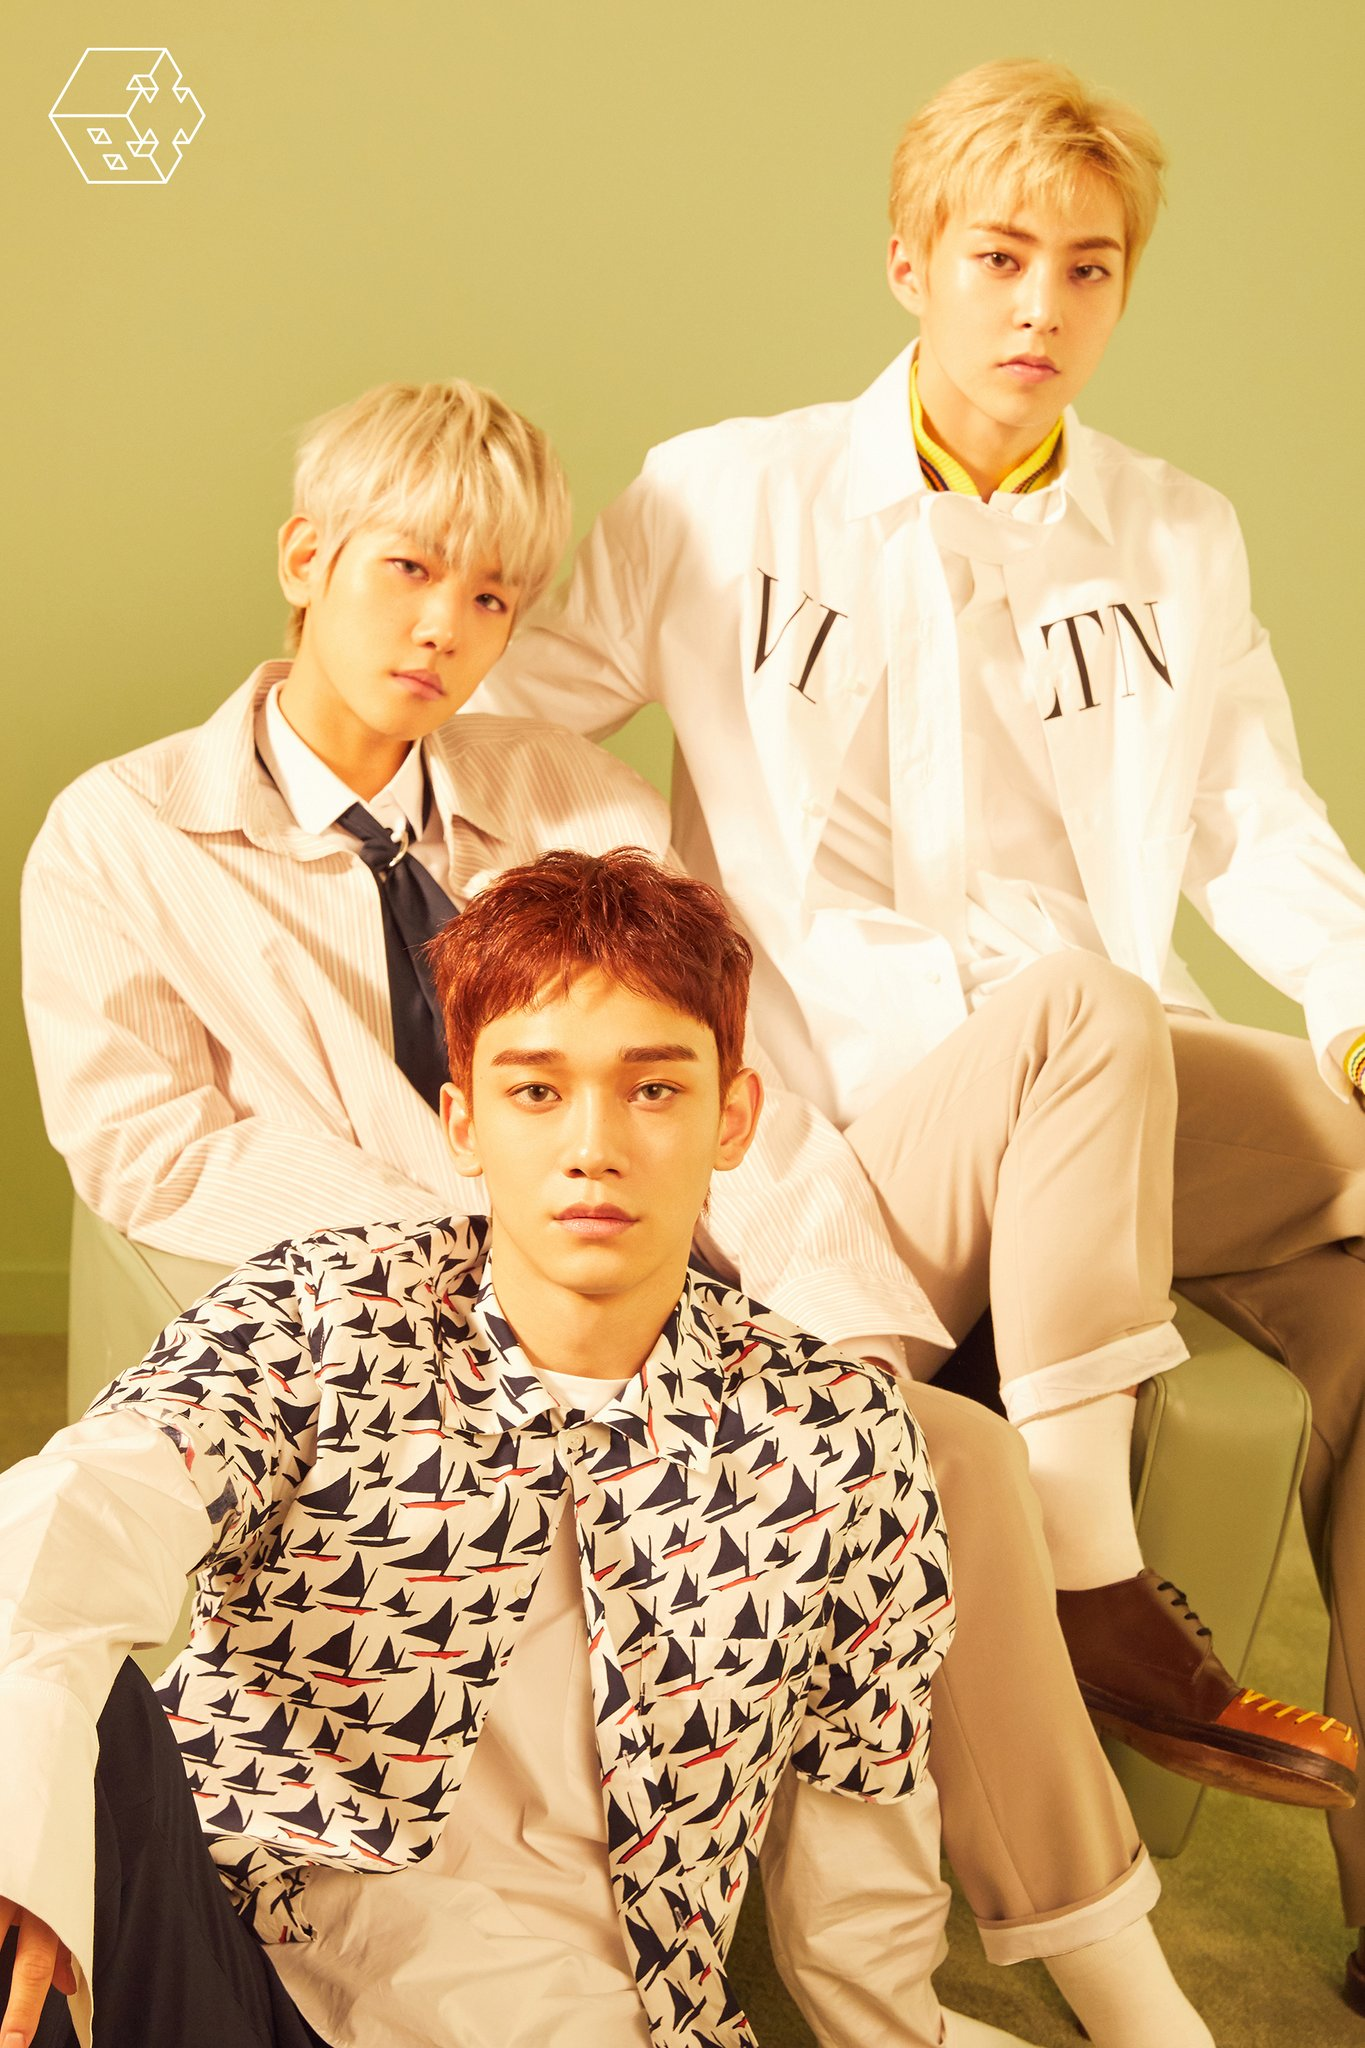 #EXO_CBX #CHEN #BAEKHYUN #XIUMIN #BloomingDays #花요일 https://t.co/Lv40ncuDus